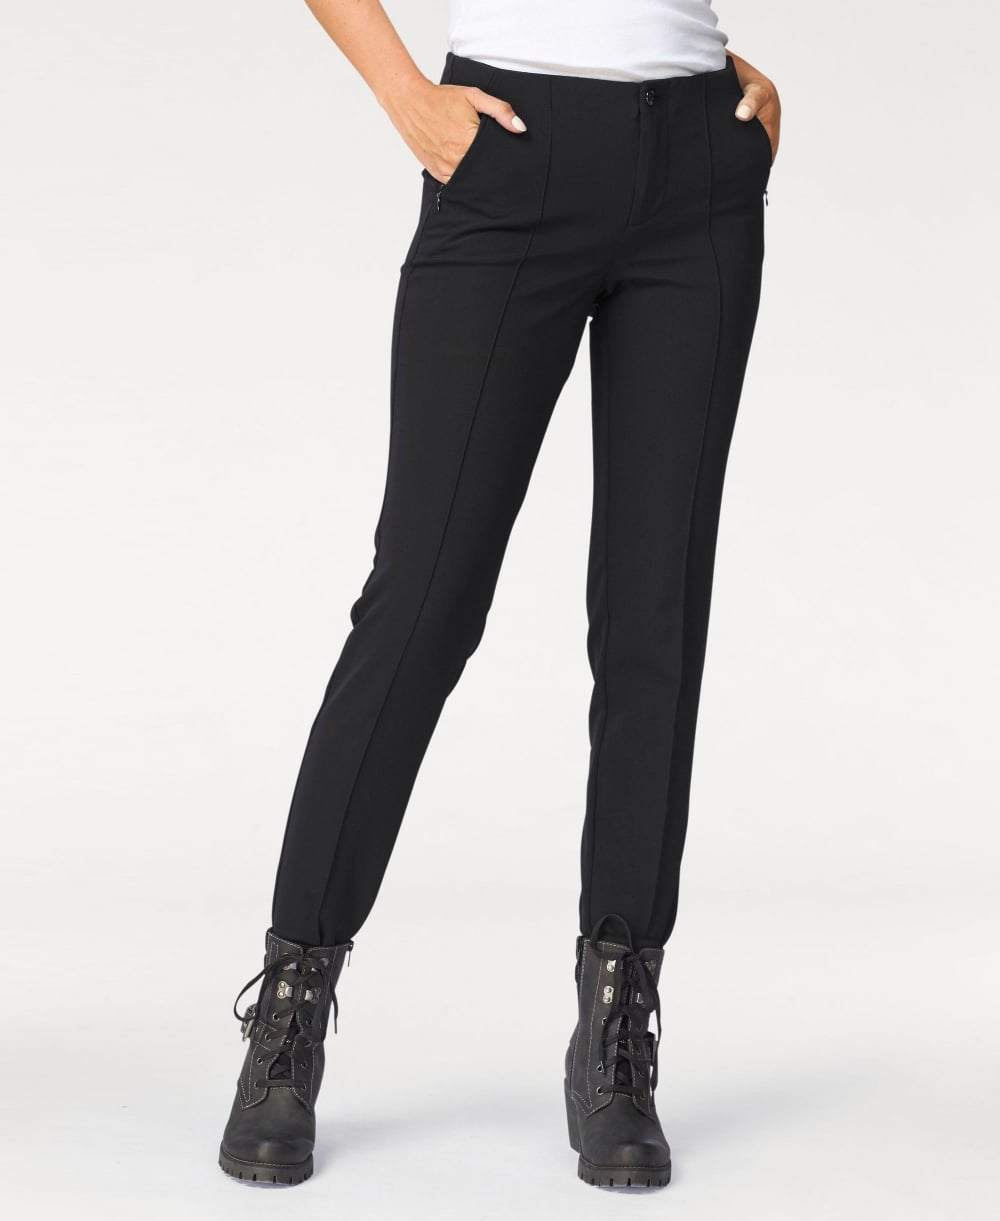 MAC Trouser anna zip trousers LEFQPML